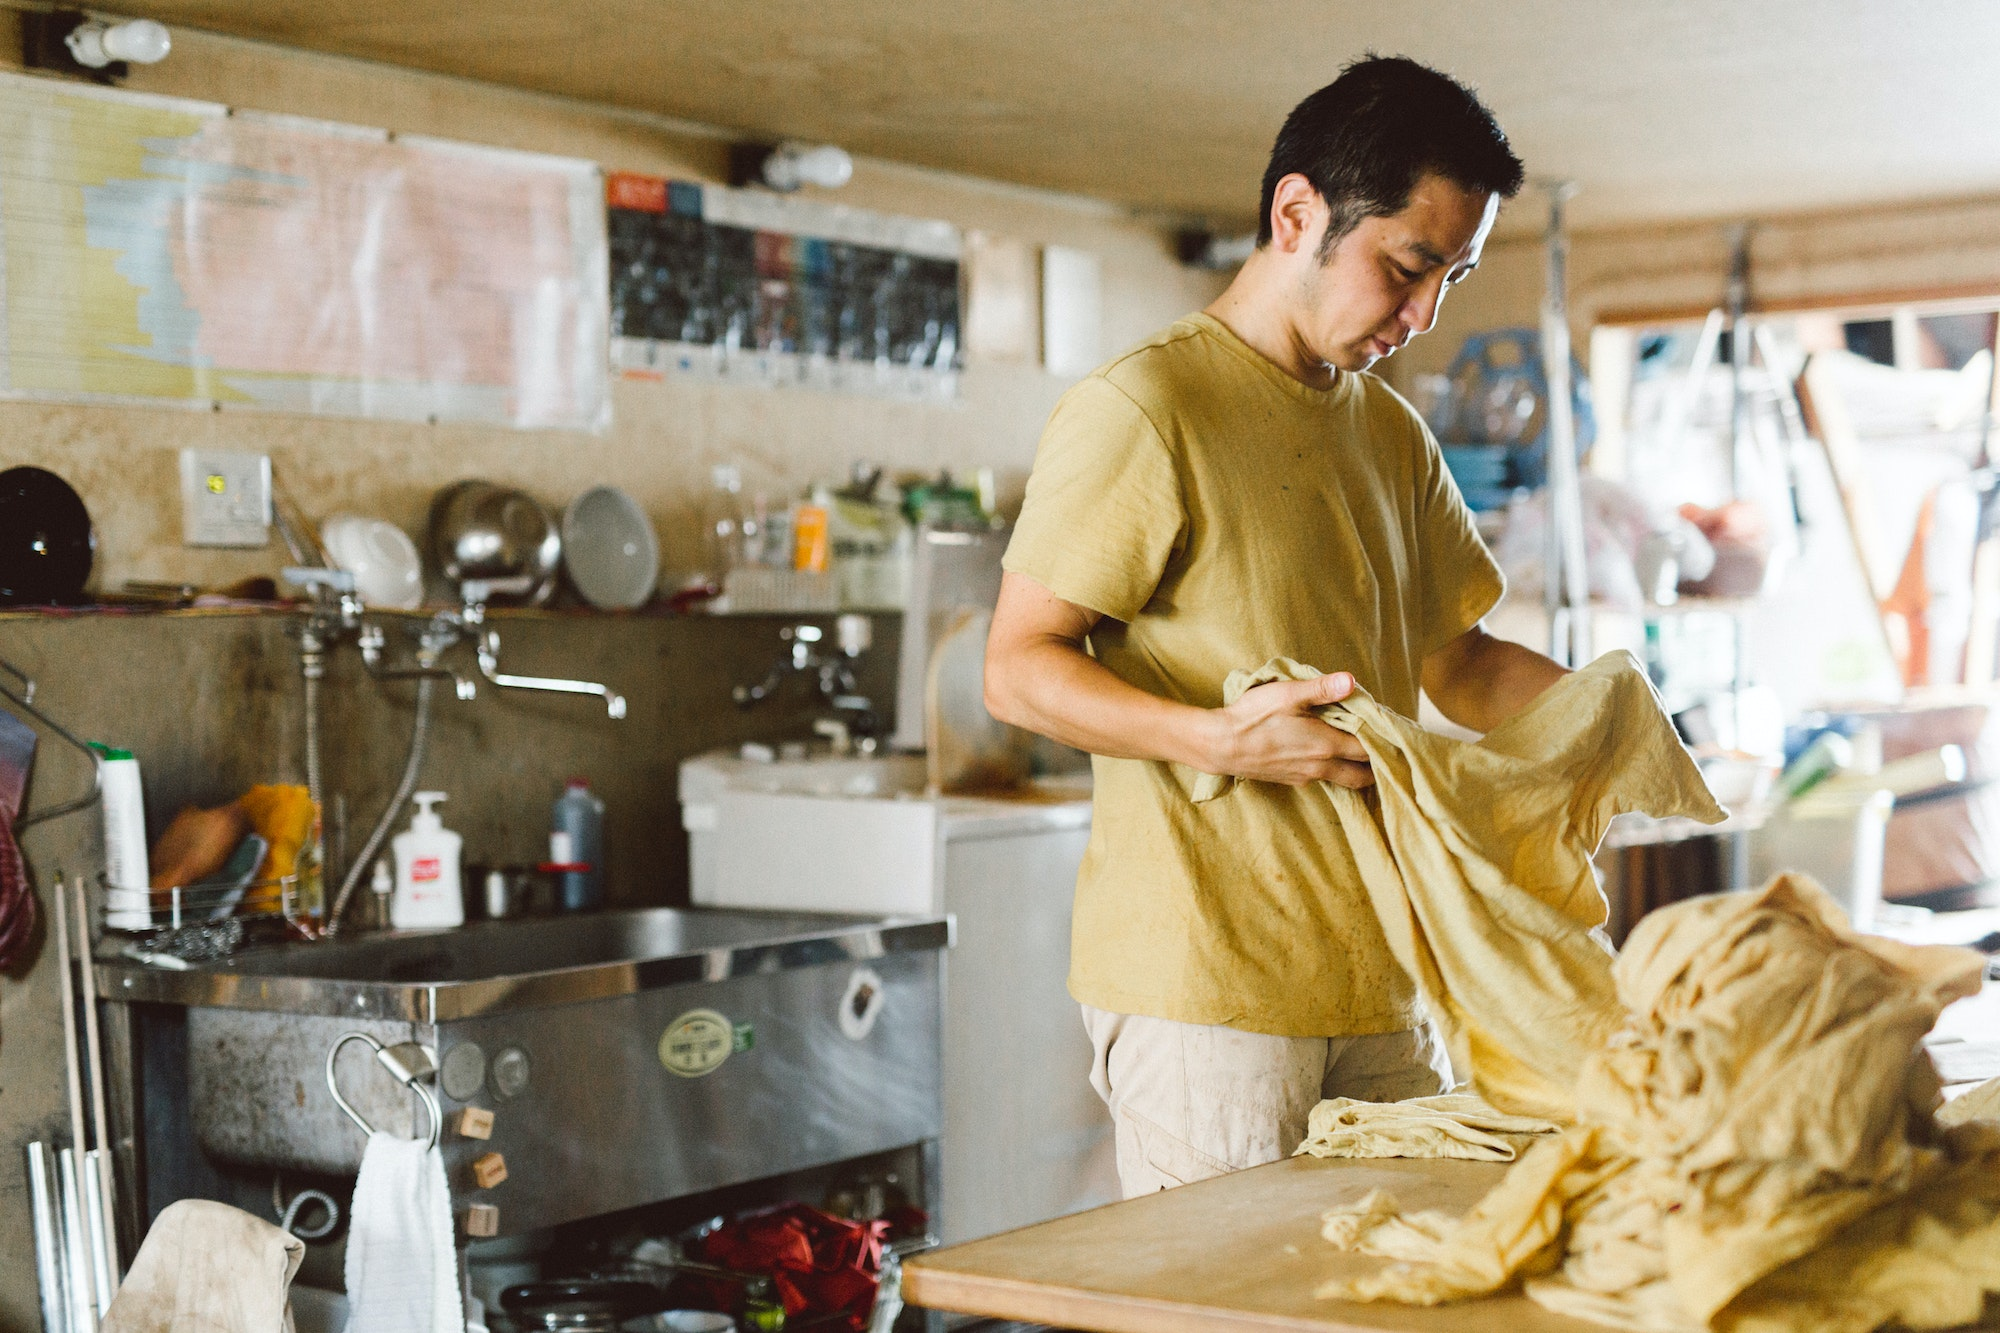 To color Tezomaya's casual cotton apparel, Masaaki Aoki uses dyes made from dried plants and other natural ingredients.